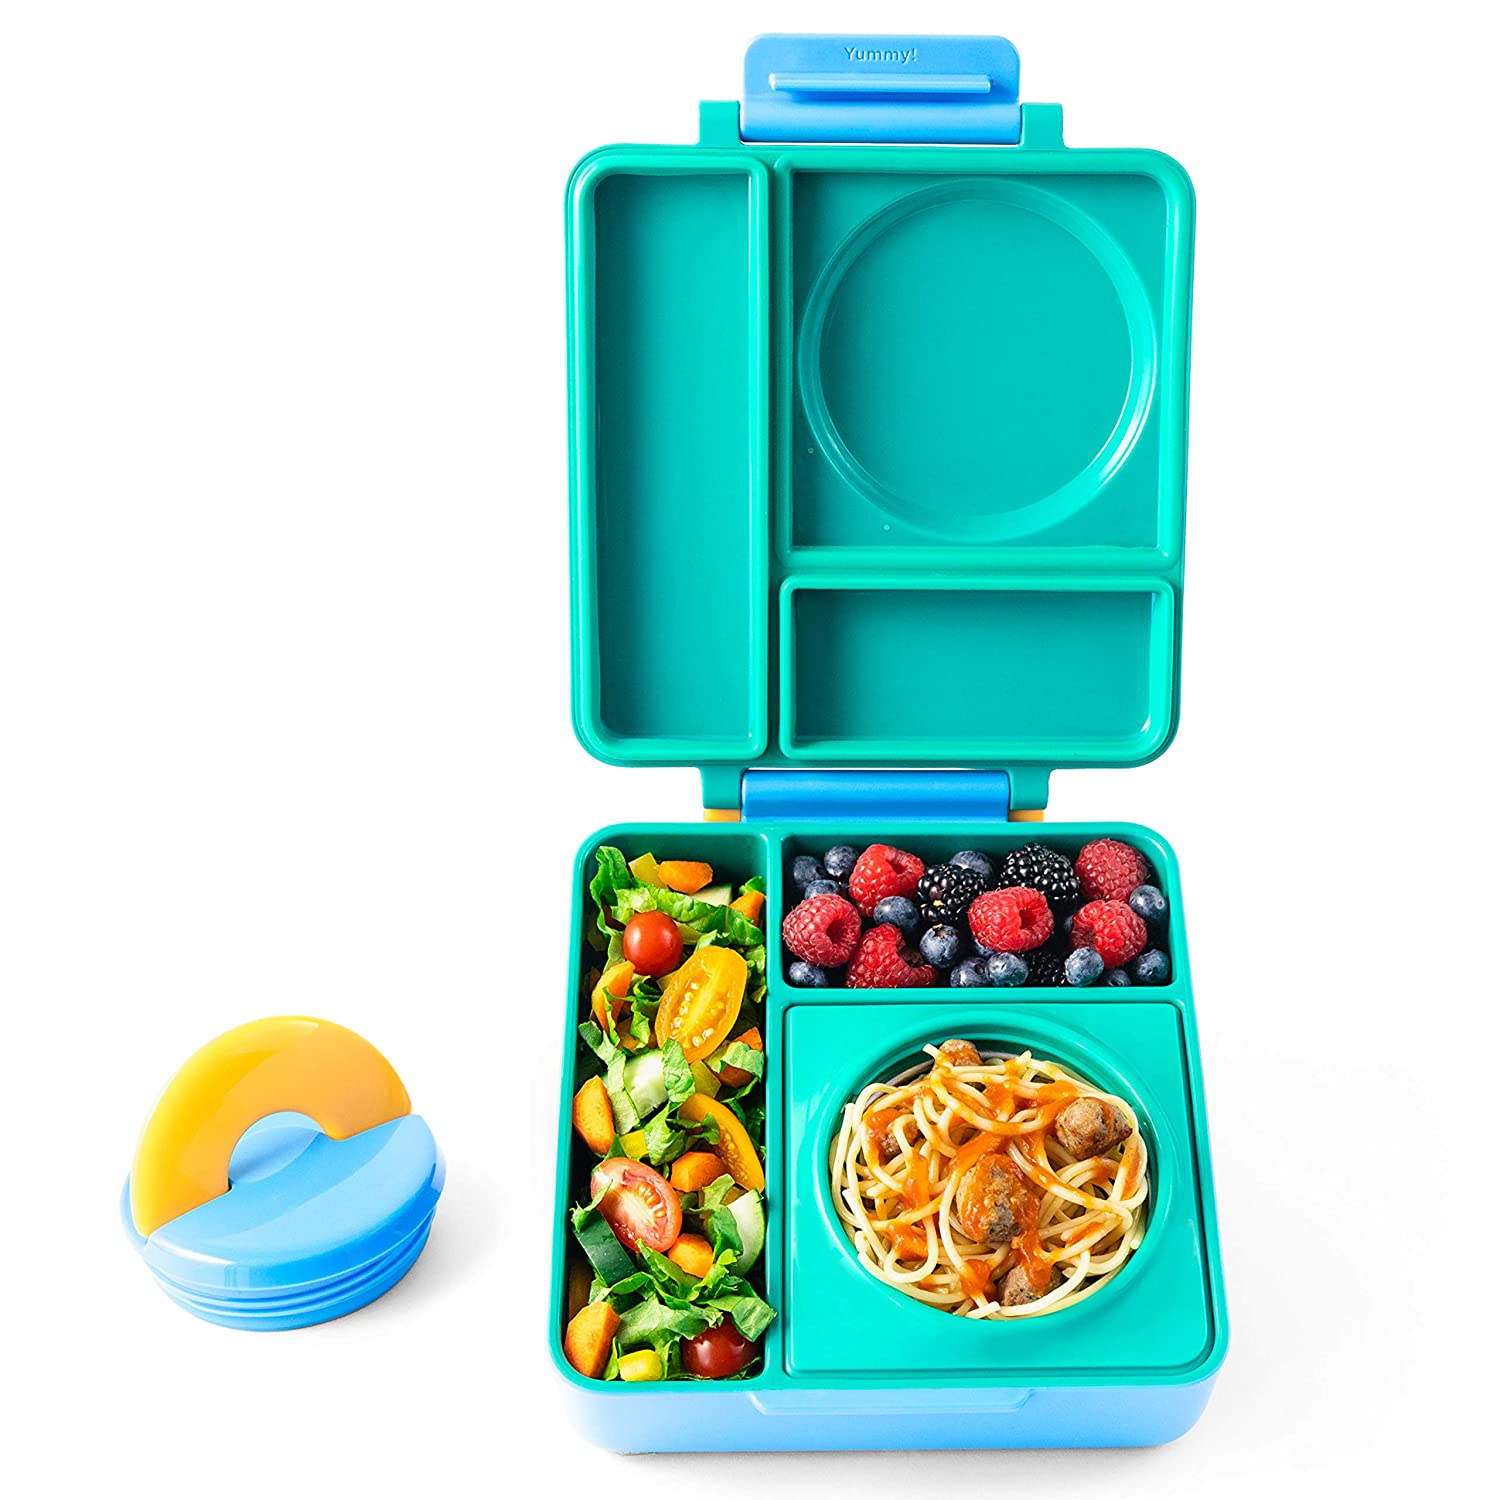 OmieBox Bento Lunch Box With Insulated Thermos For Kids, Meadow OmieLife B9099